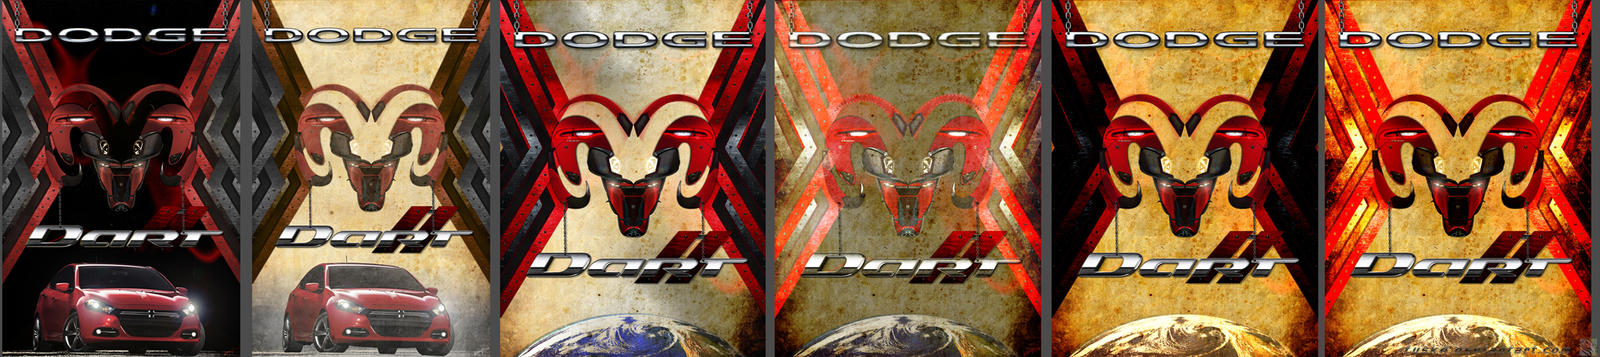 Dodge ram by fusk4